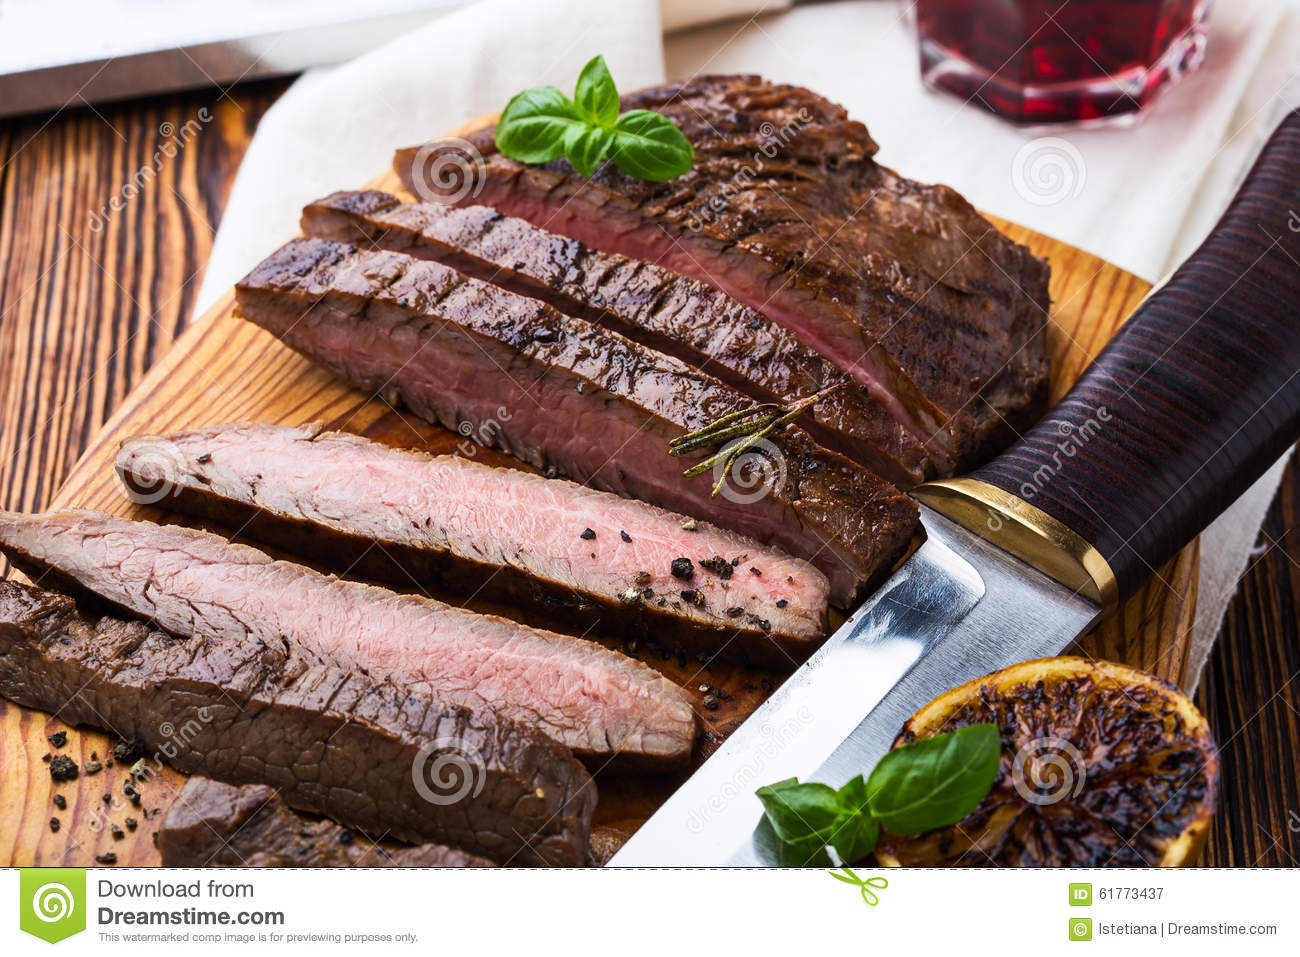 Grilled Marinated Flank Steak Stock Photo - Image: 61773437